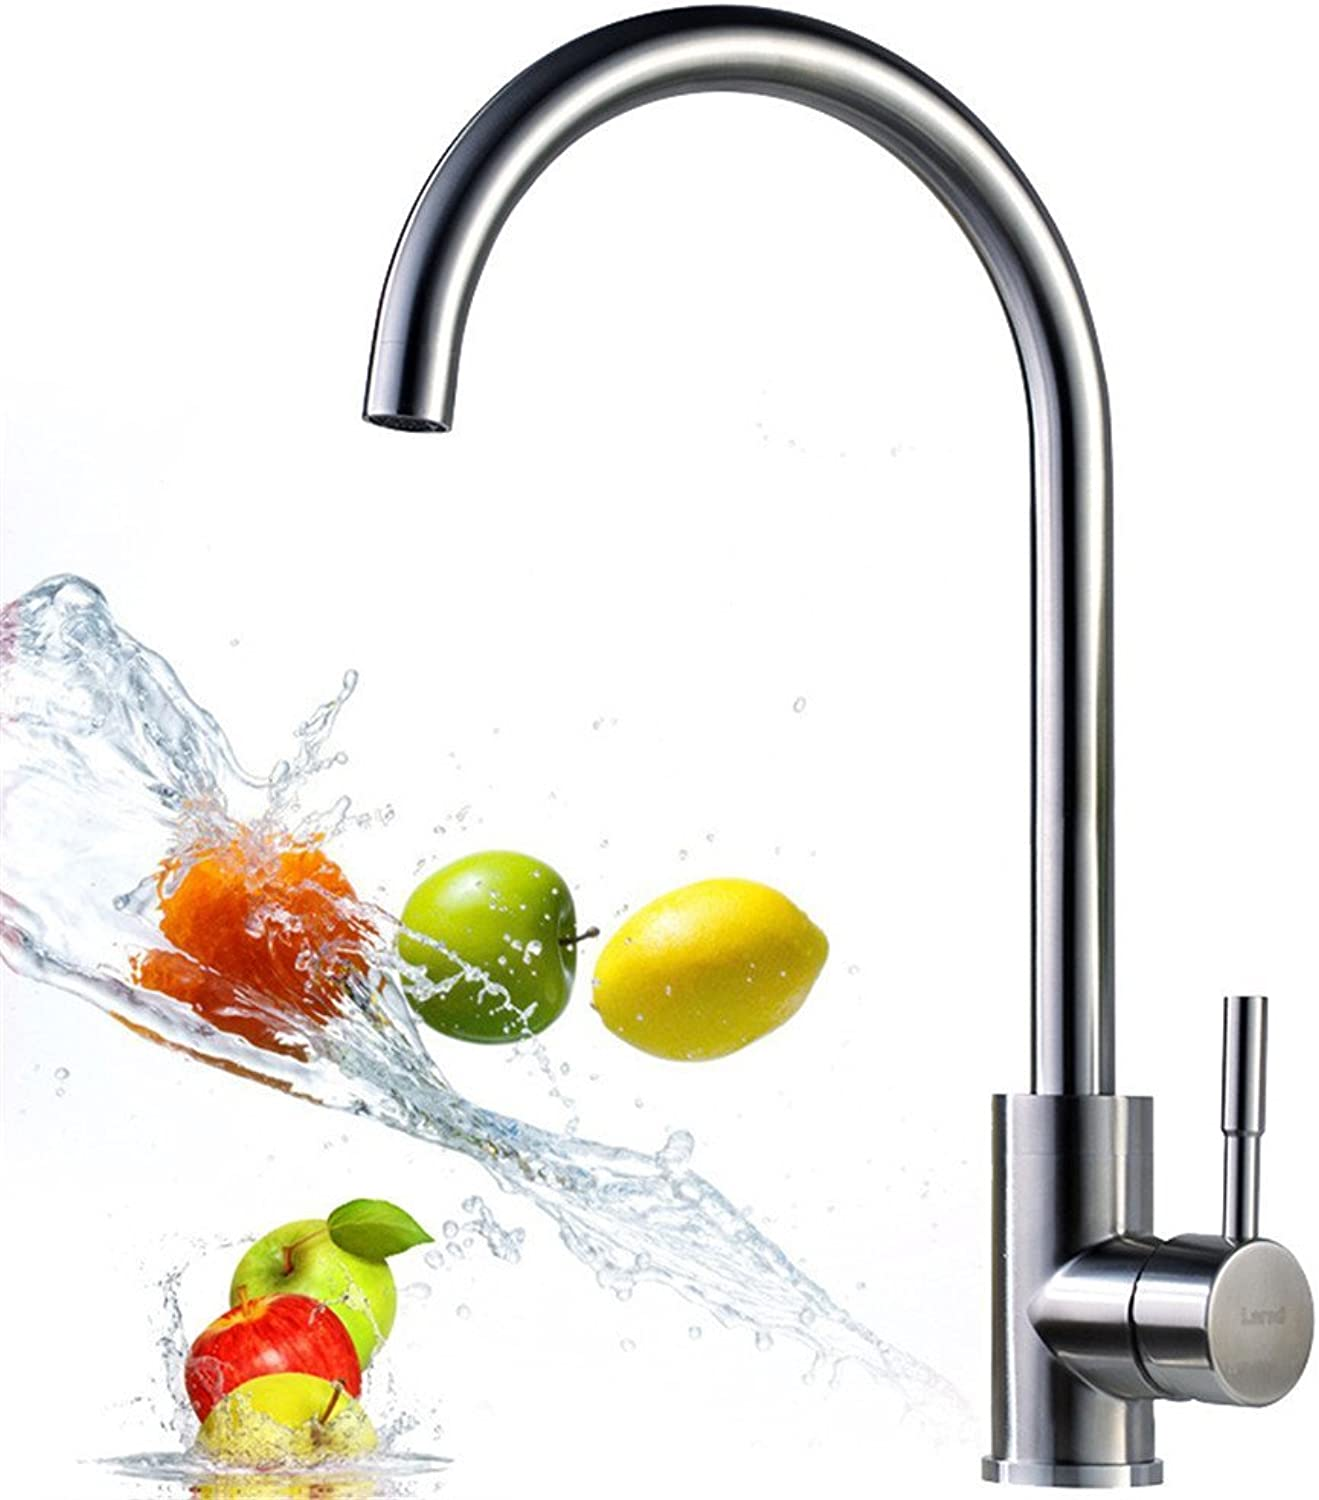 Decorry 304 Stainless Steel Lead-Free Kitchen Sink Hot and Cold Wash Vegetable Pot Faucet Ceramic Spool